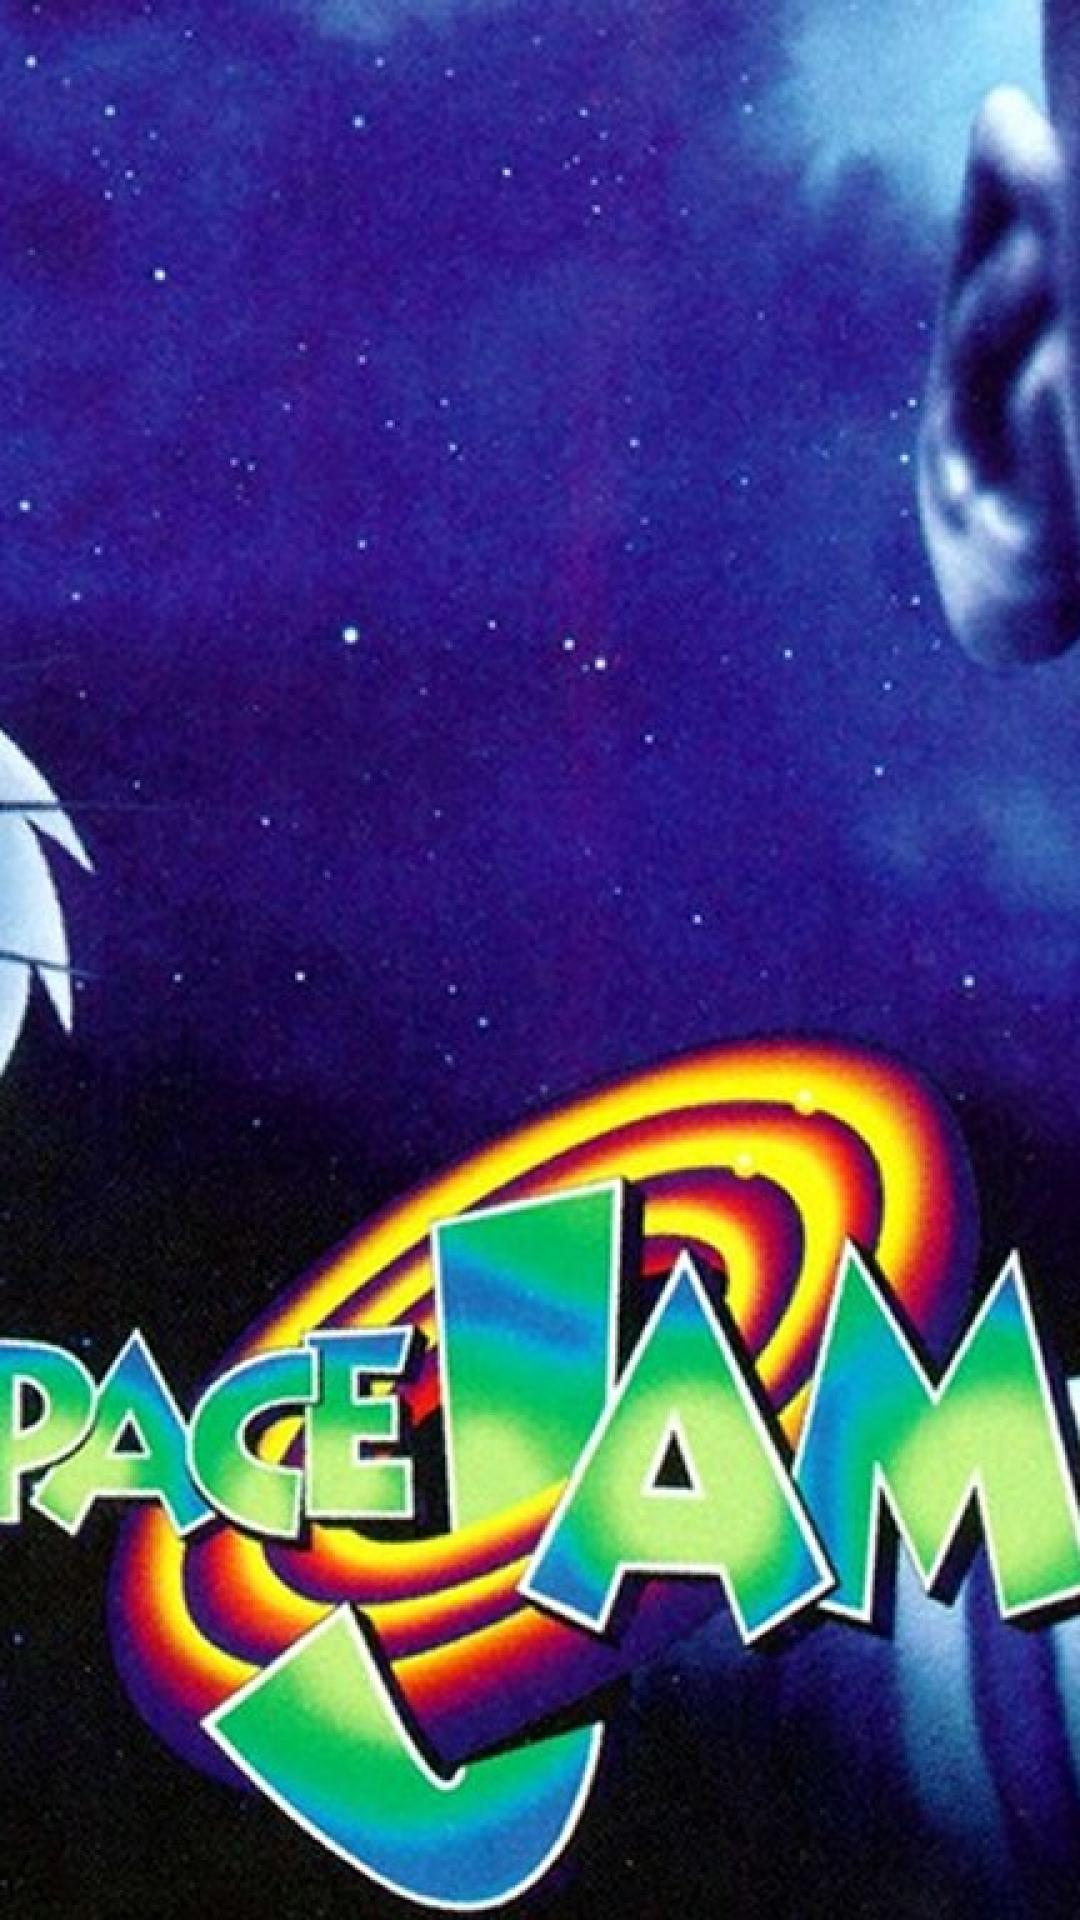 74 Space Jam Wallpaper On Wallpapersafari